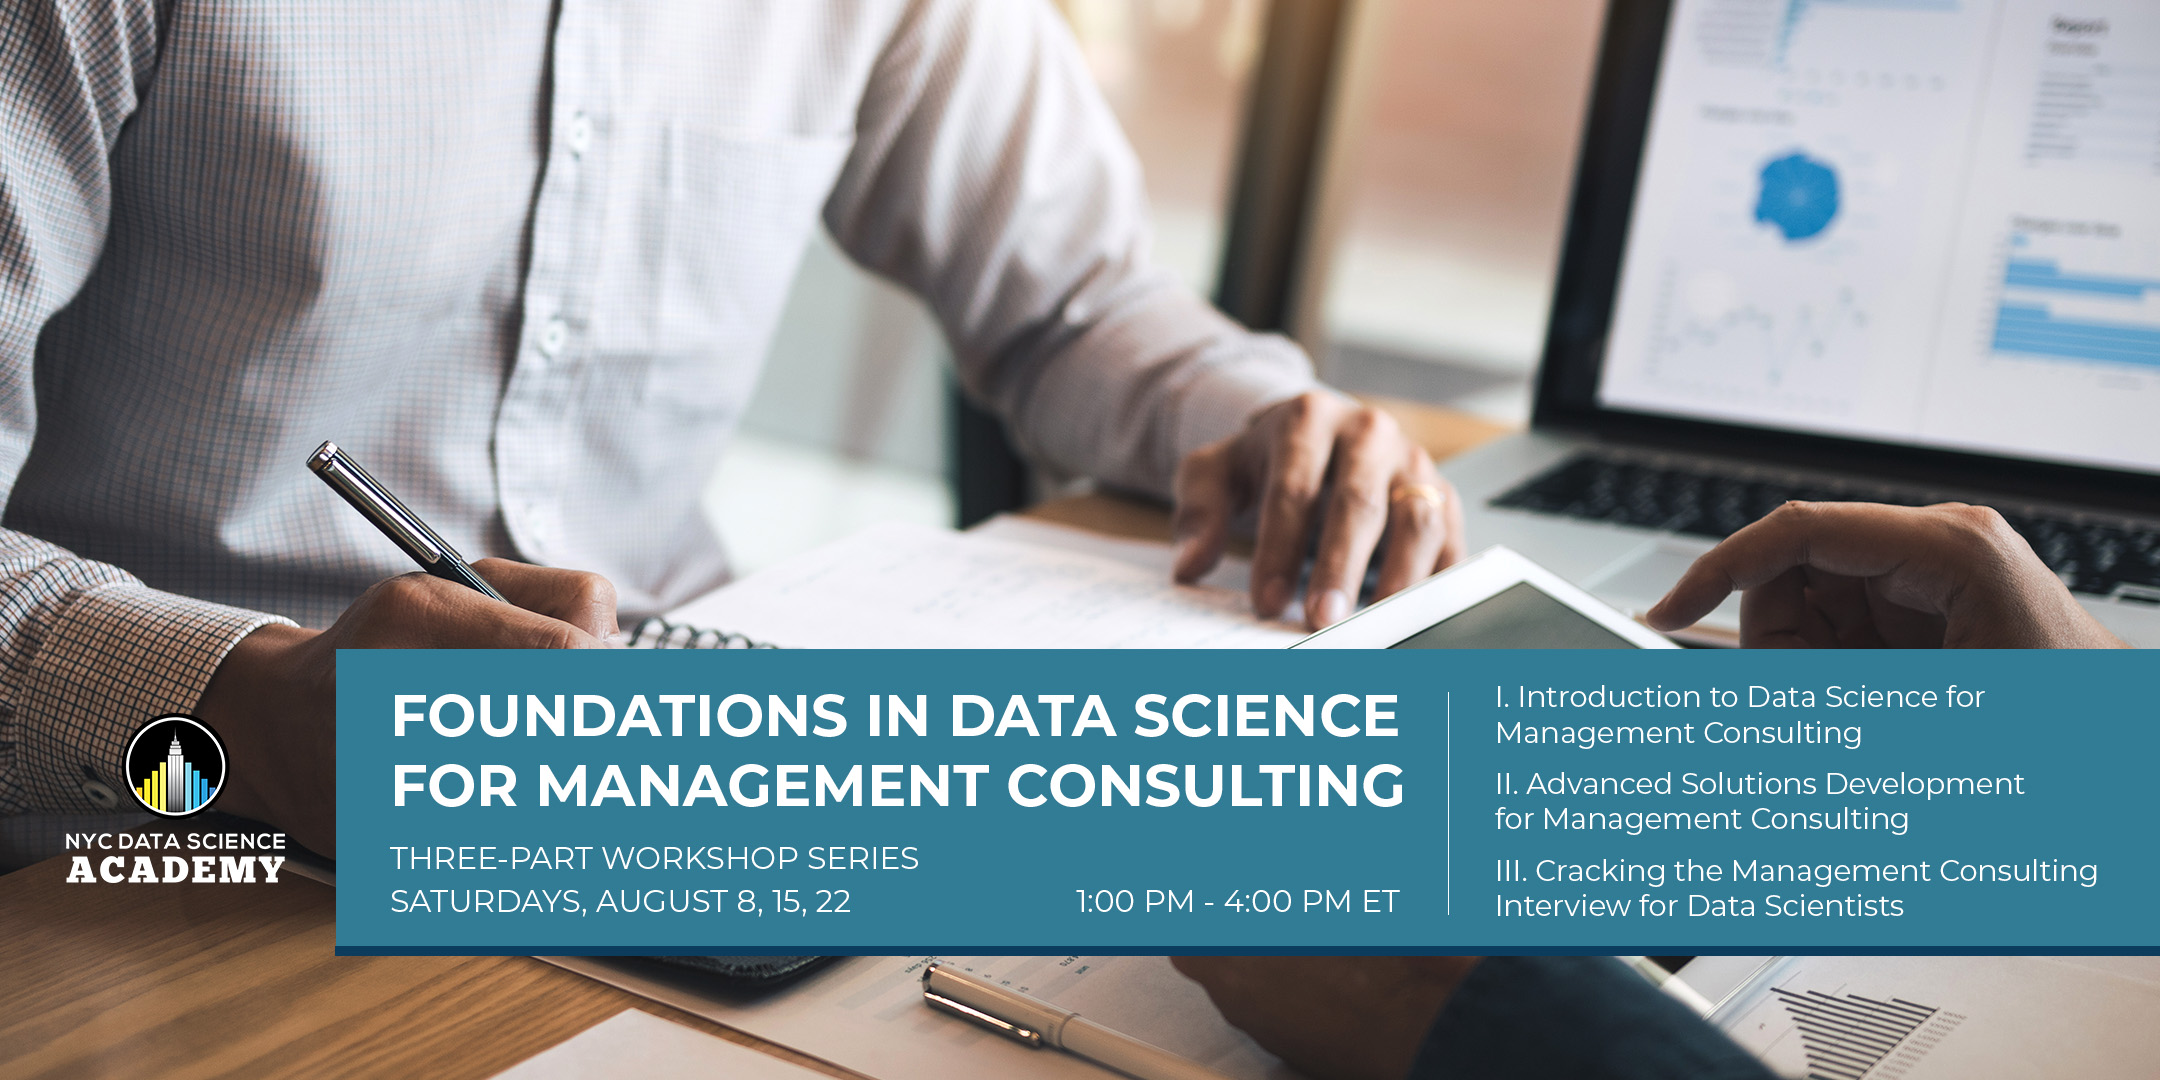 eventbrite-cover-image-management-consulting-for-data-science-519553-qMBx4Vsz